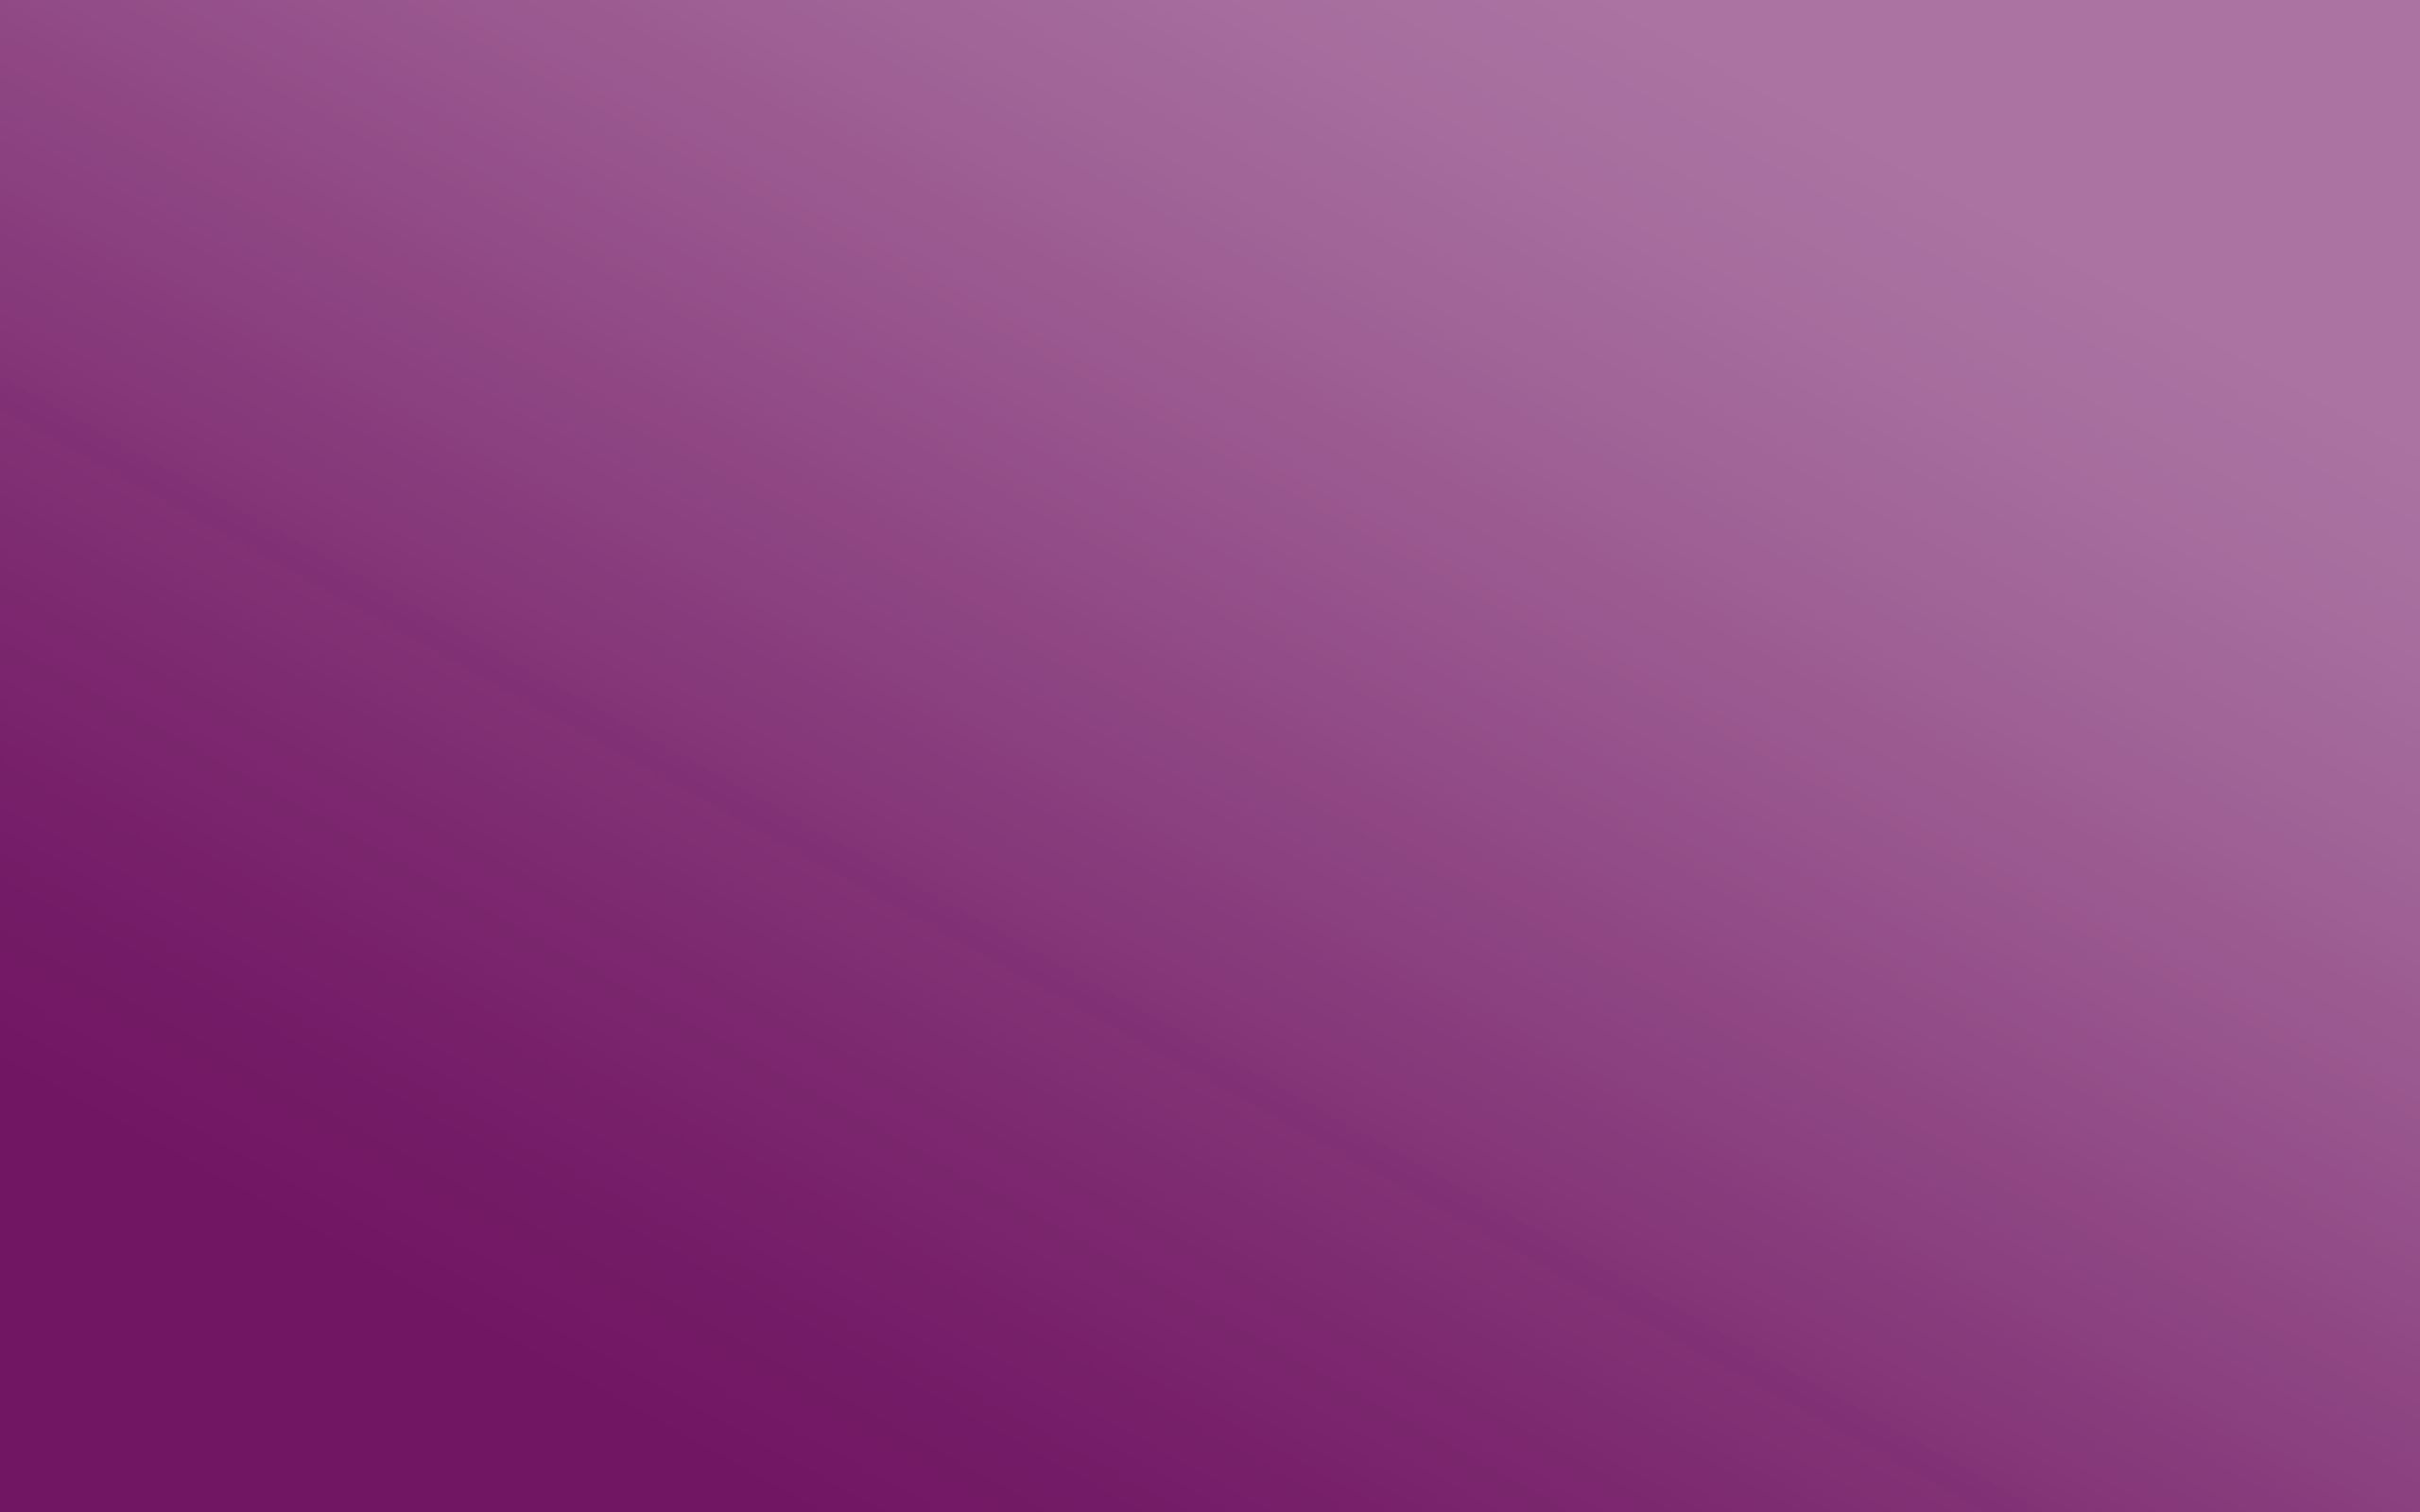 98950 download wallpaper Colorful, Abstract, Background, Violet, Purple, Colourful, Solid screensavers and pictures for free